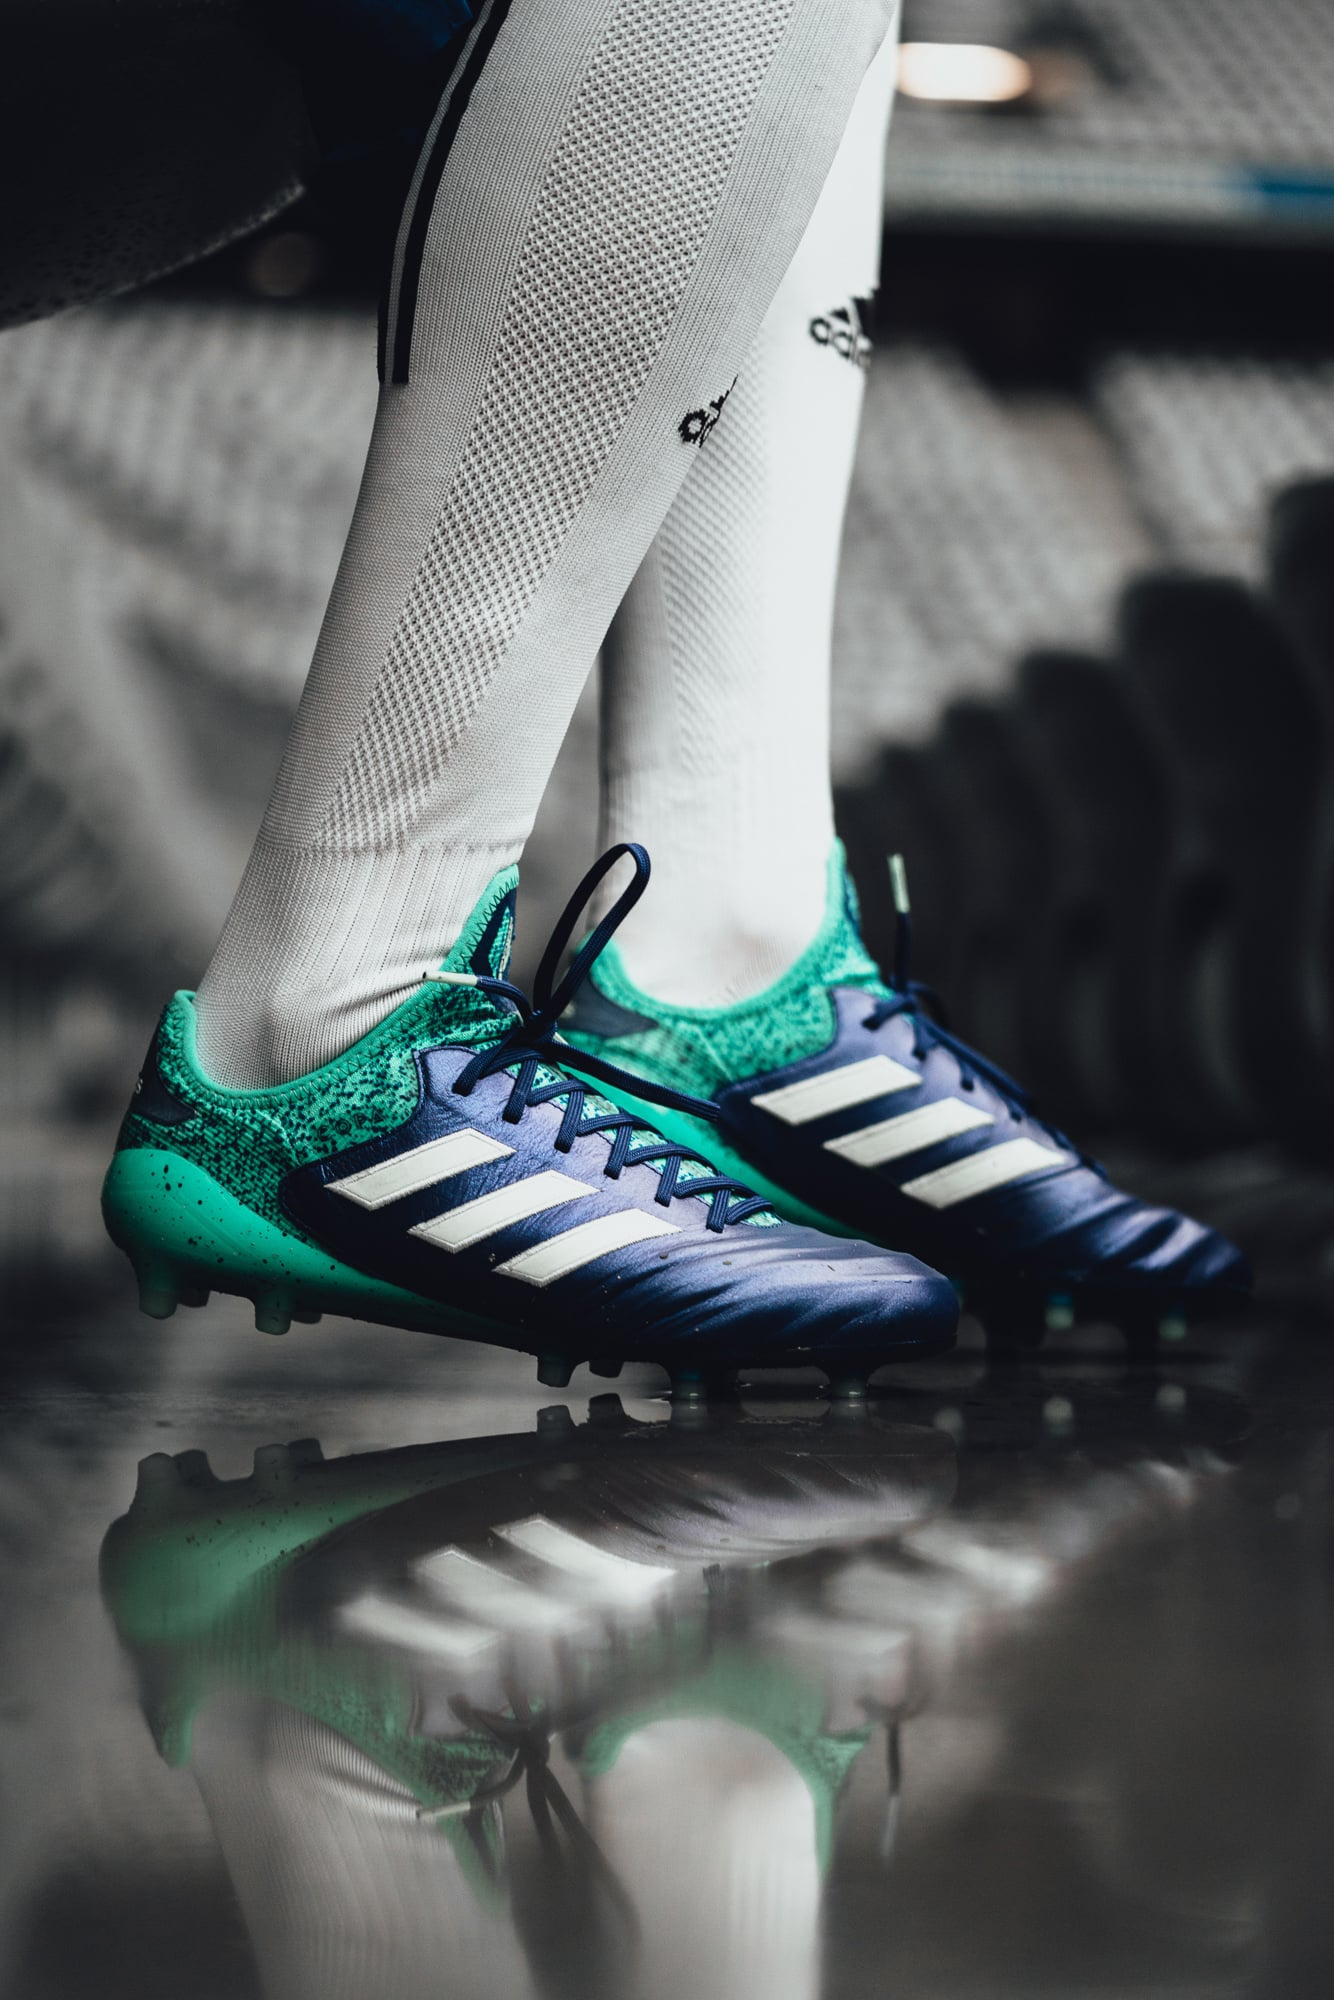 chaussure-football-adidas-copa-deadly-strike-mars-2018